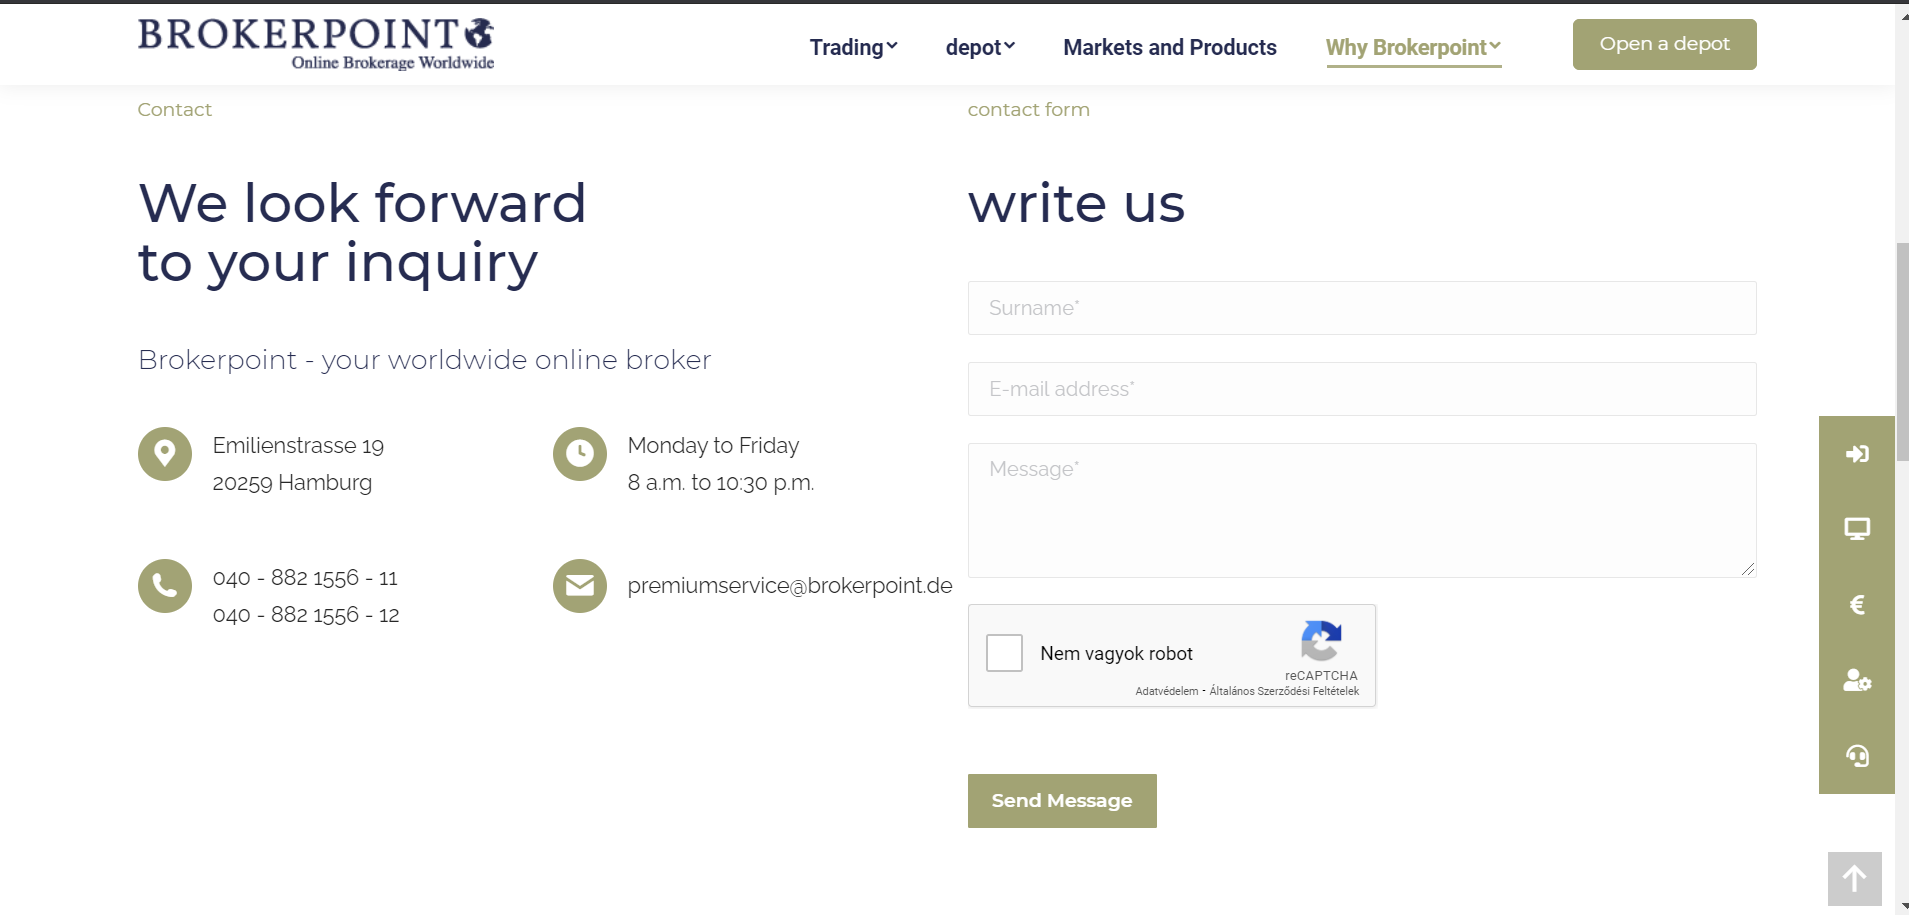 Brokerpoint review - Customer Service